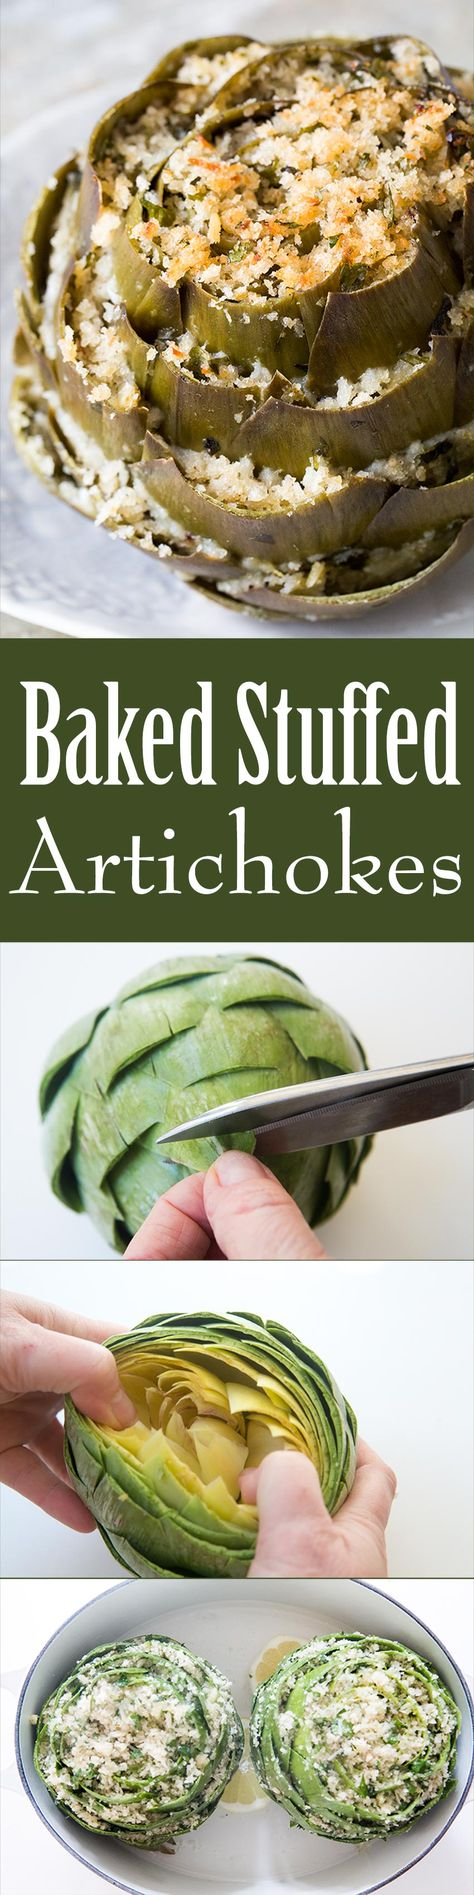 Stuffed artichokes are a perfect Easter artichoke appetizer! The ultimate stuffed artichoke recipe.